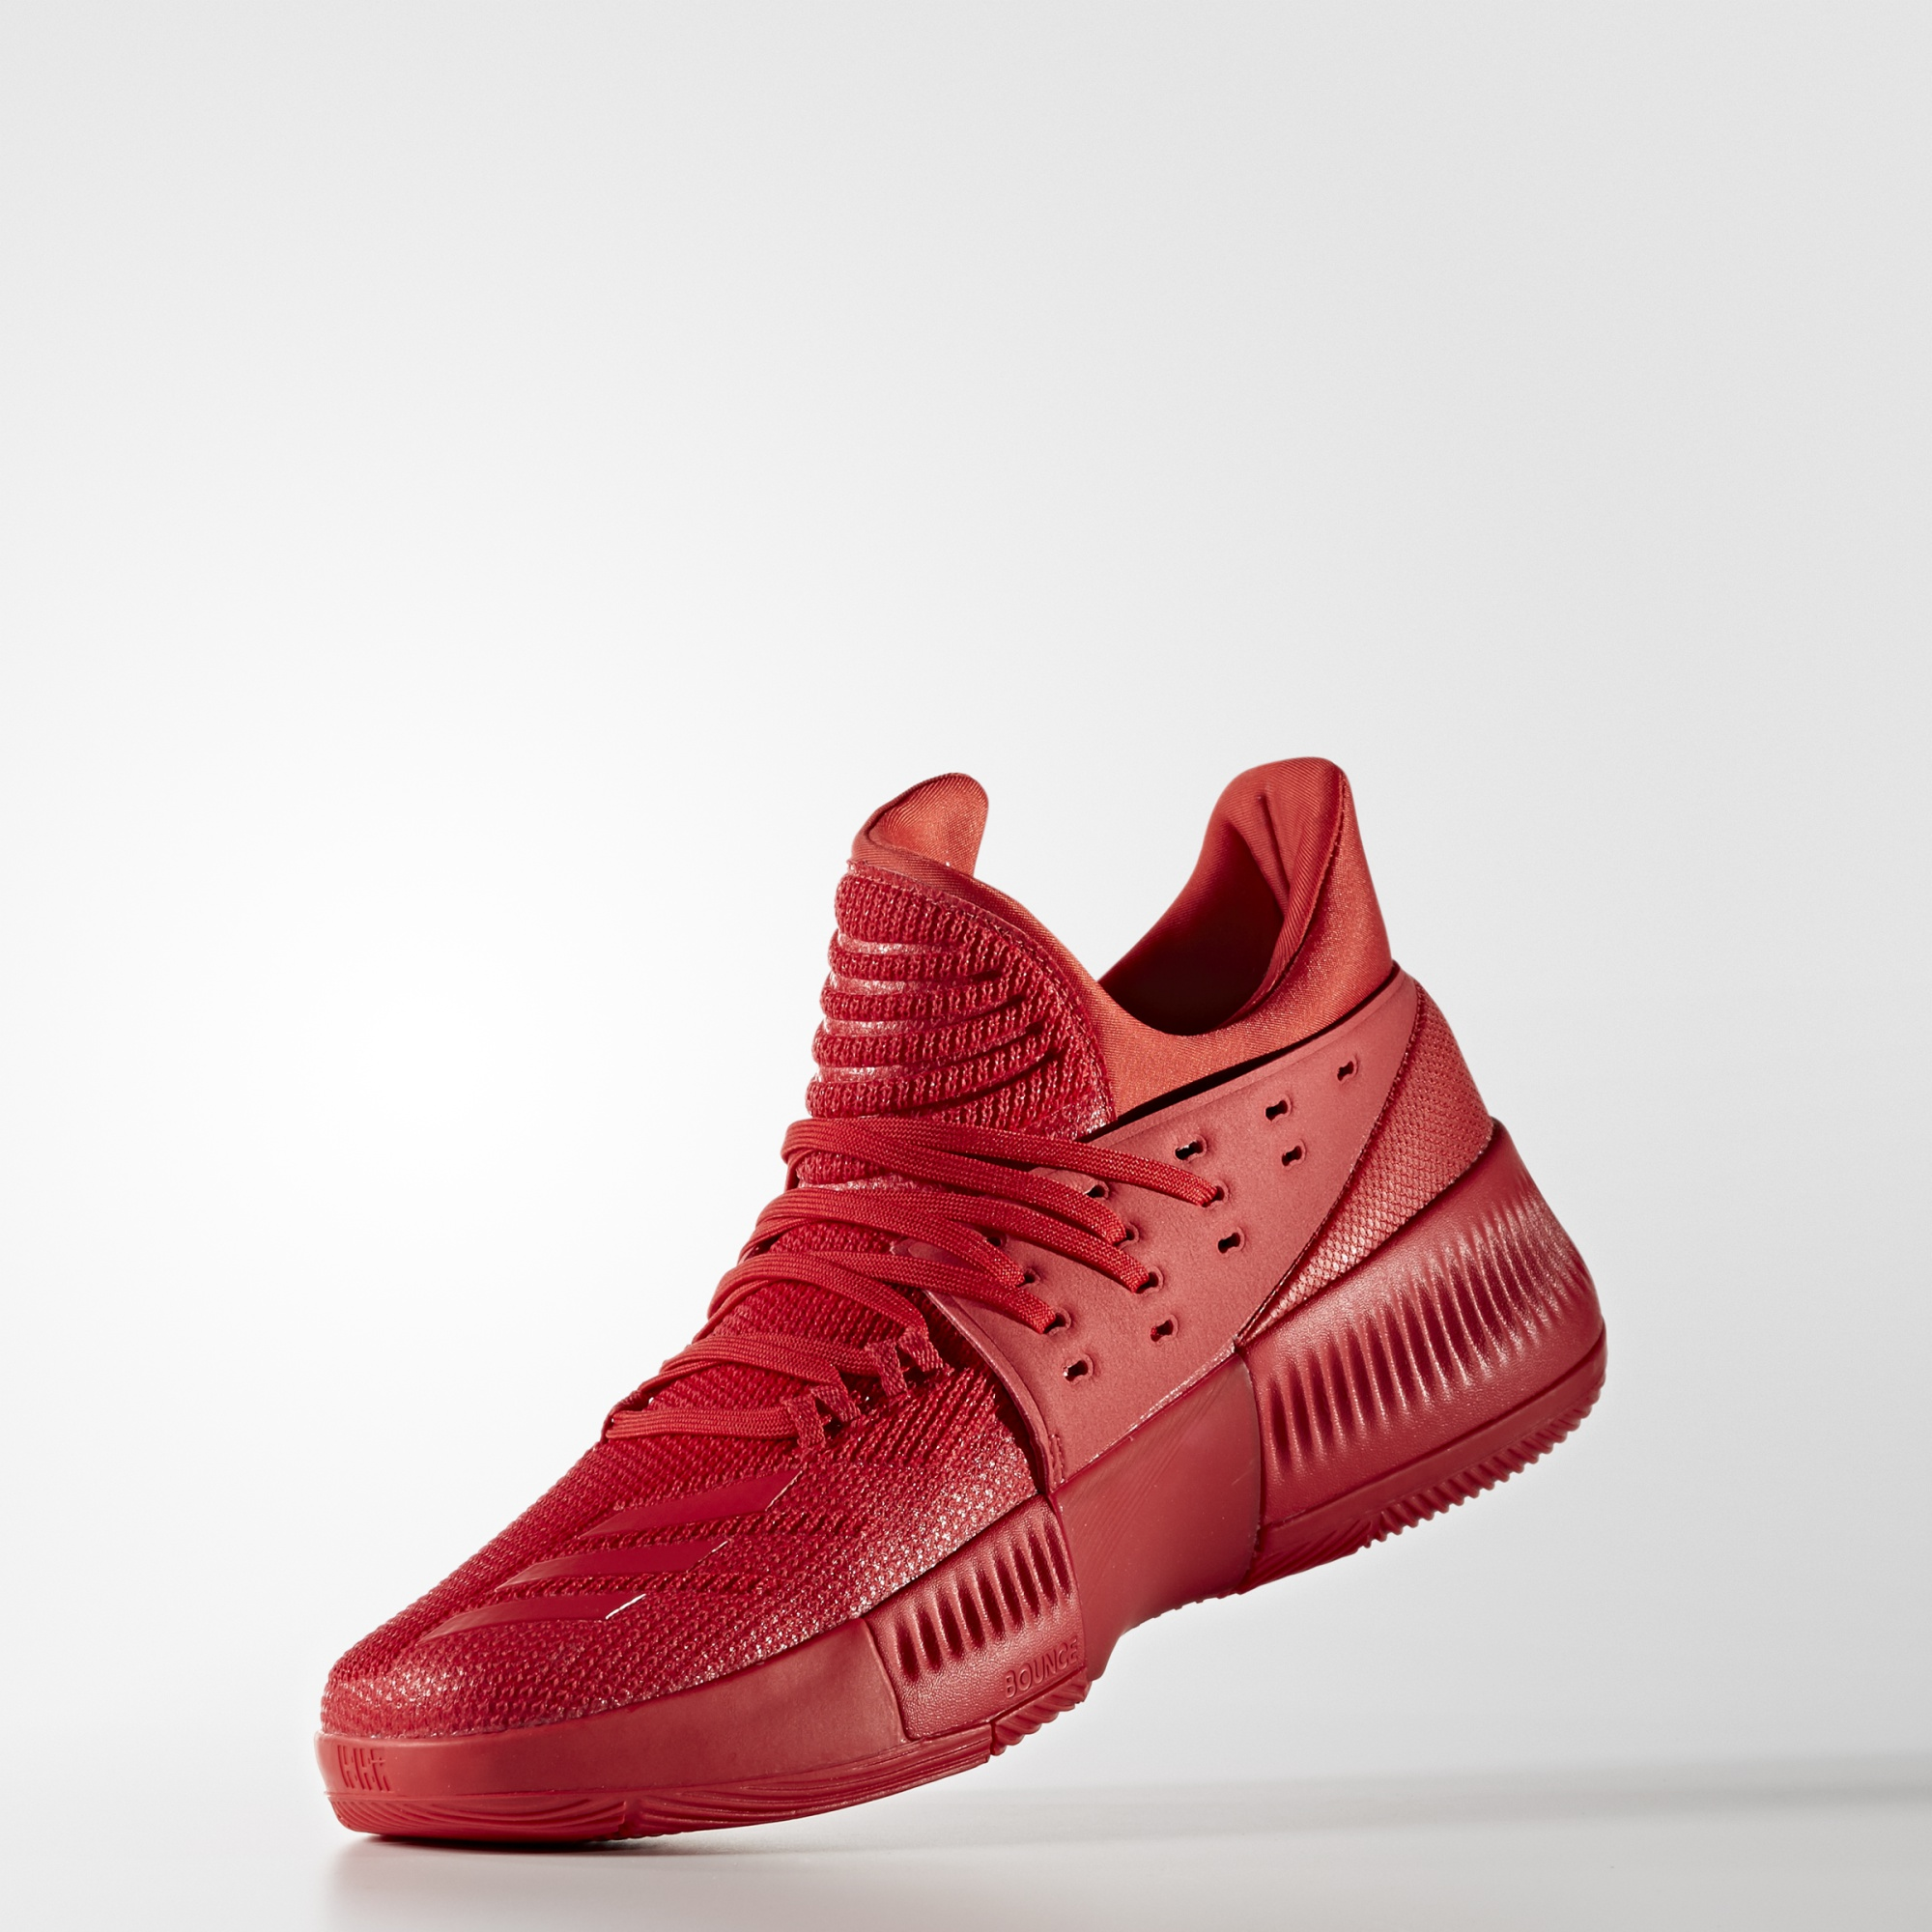 D 3 Basketball Shoes Roots Adidas Lillard ACFwx0qdA